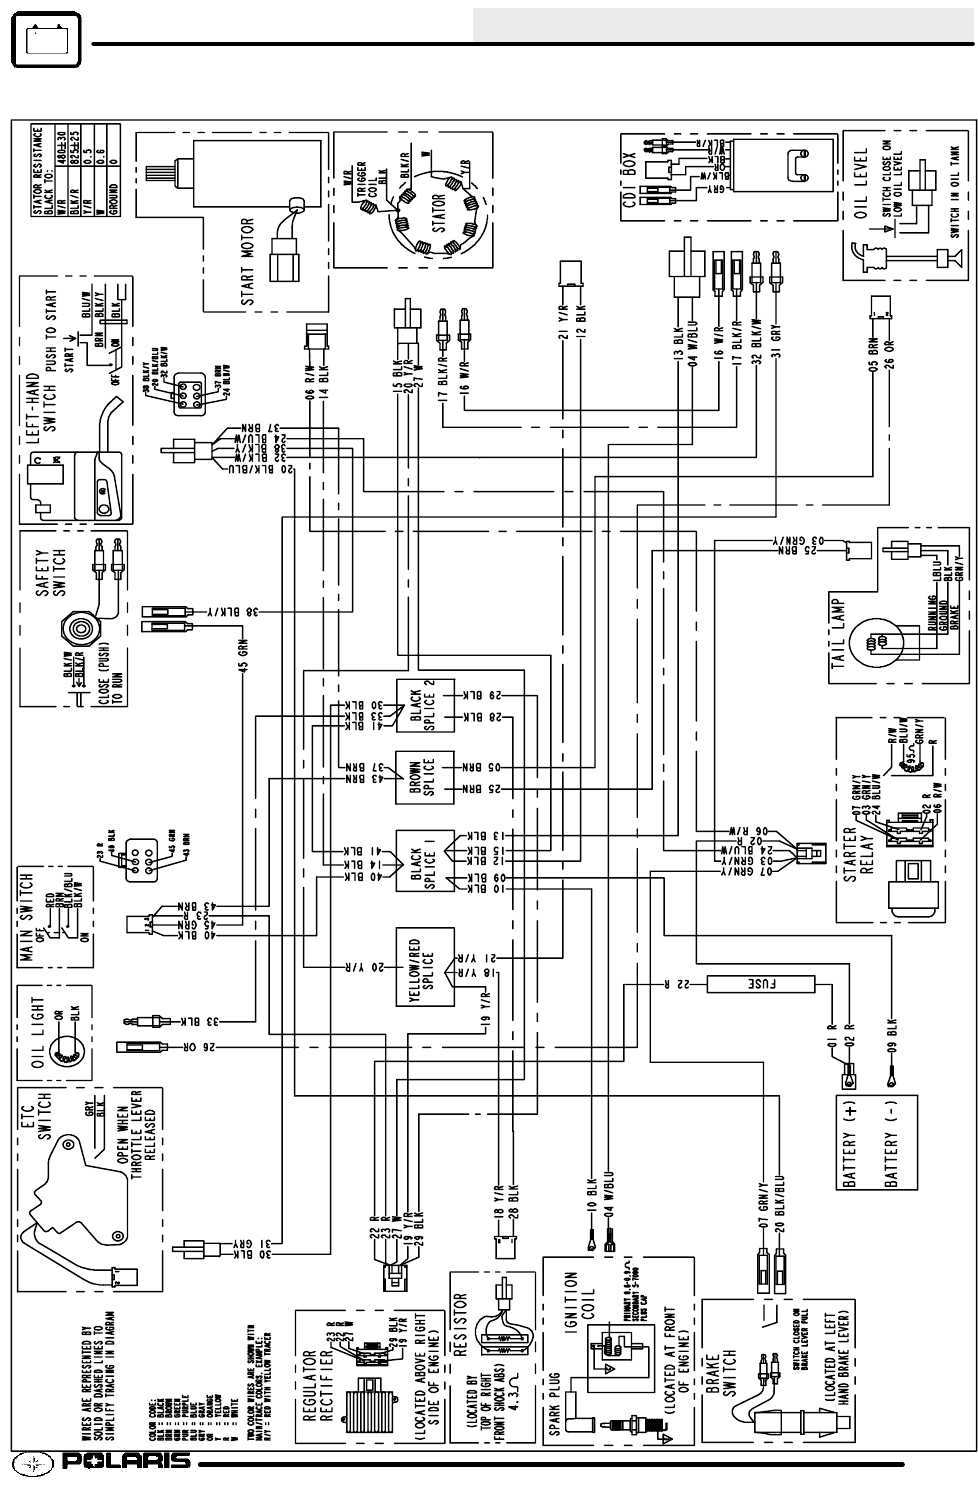 1986 F150 351w Wiring Diagram 164325 together with Ford Explorer Mk2 Fuse Boc Diagram Usa Version moreover 7 Pin To 5 Pin Trailer Wiring Diagram additionally 1999 Ford Explorer Electrical Wiring Diagram further Schematics i. on ford ranger brake light switch